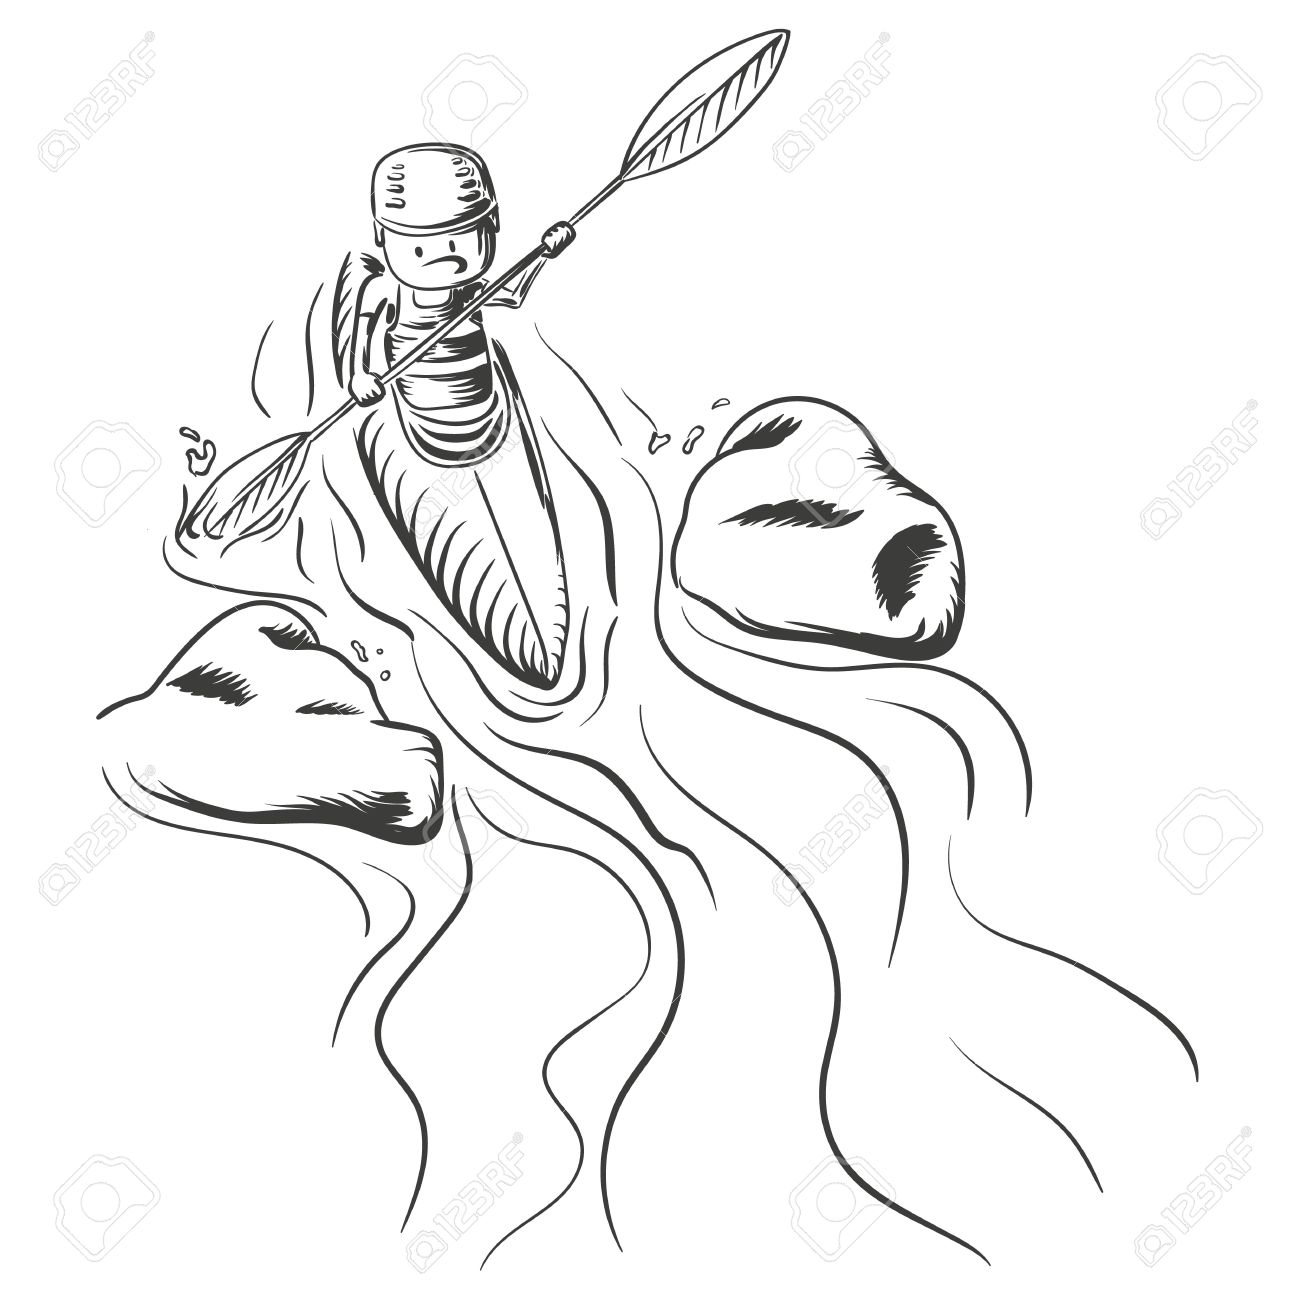 Hand Drawn Illustration Of Kayaking A Man Going Down The River Stock Vector